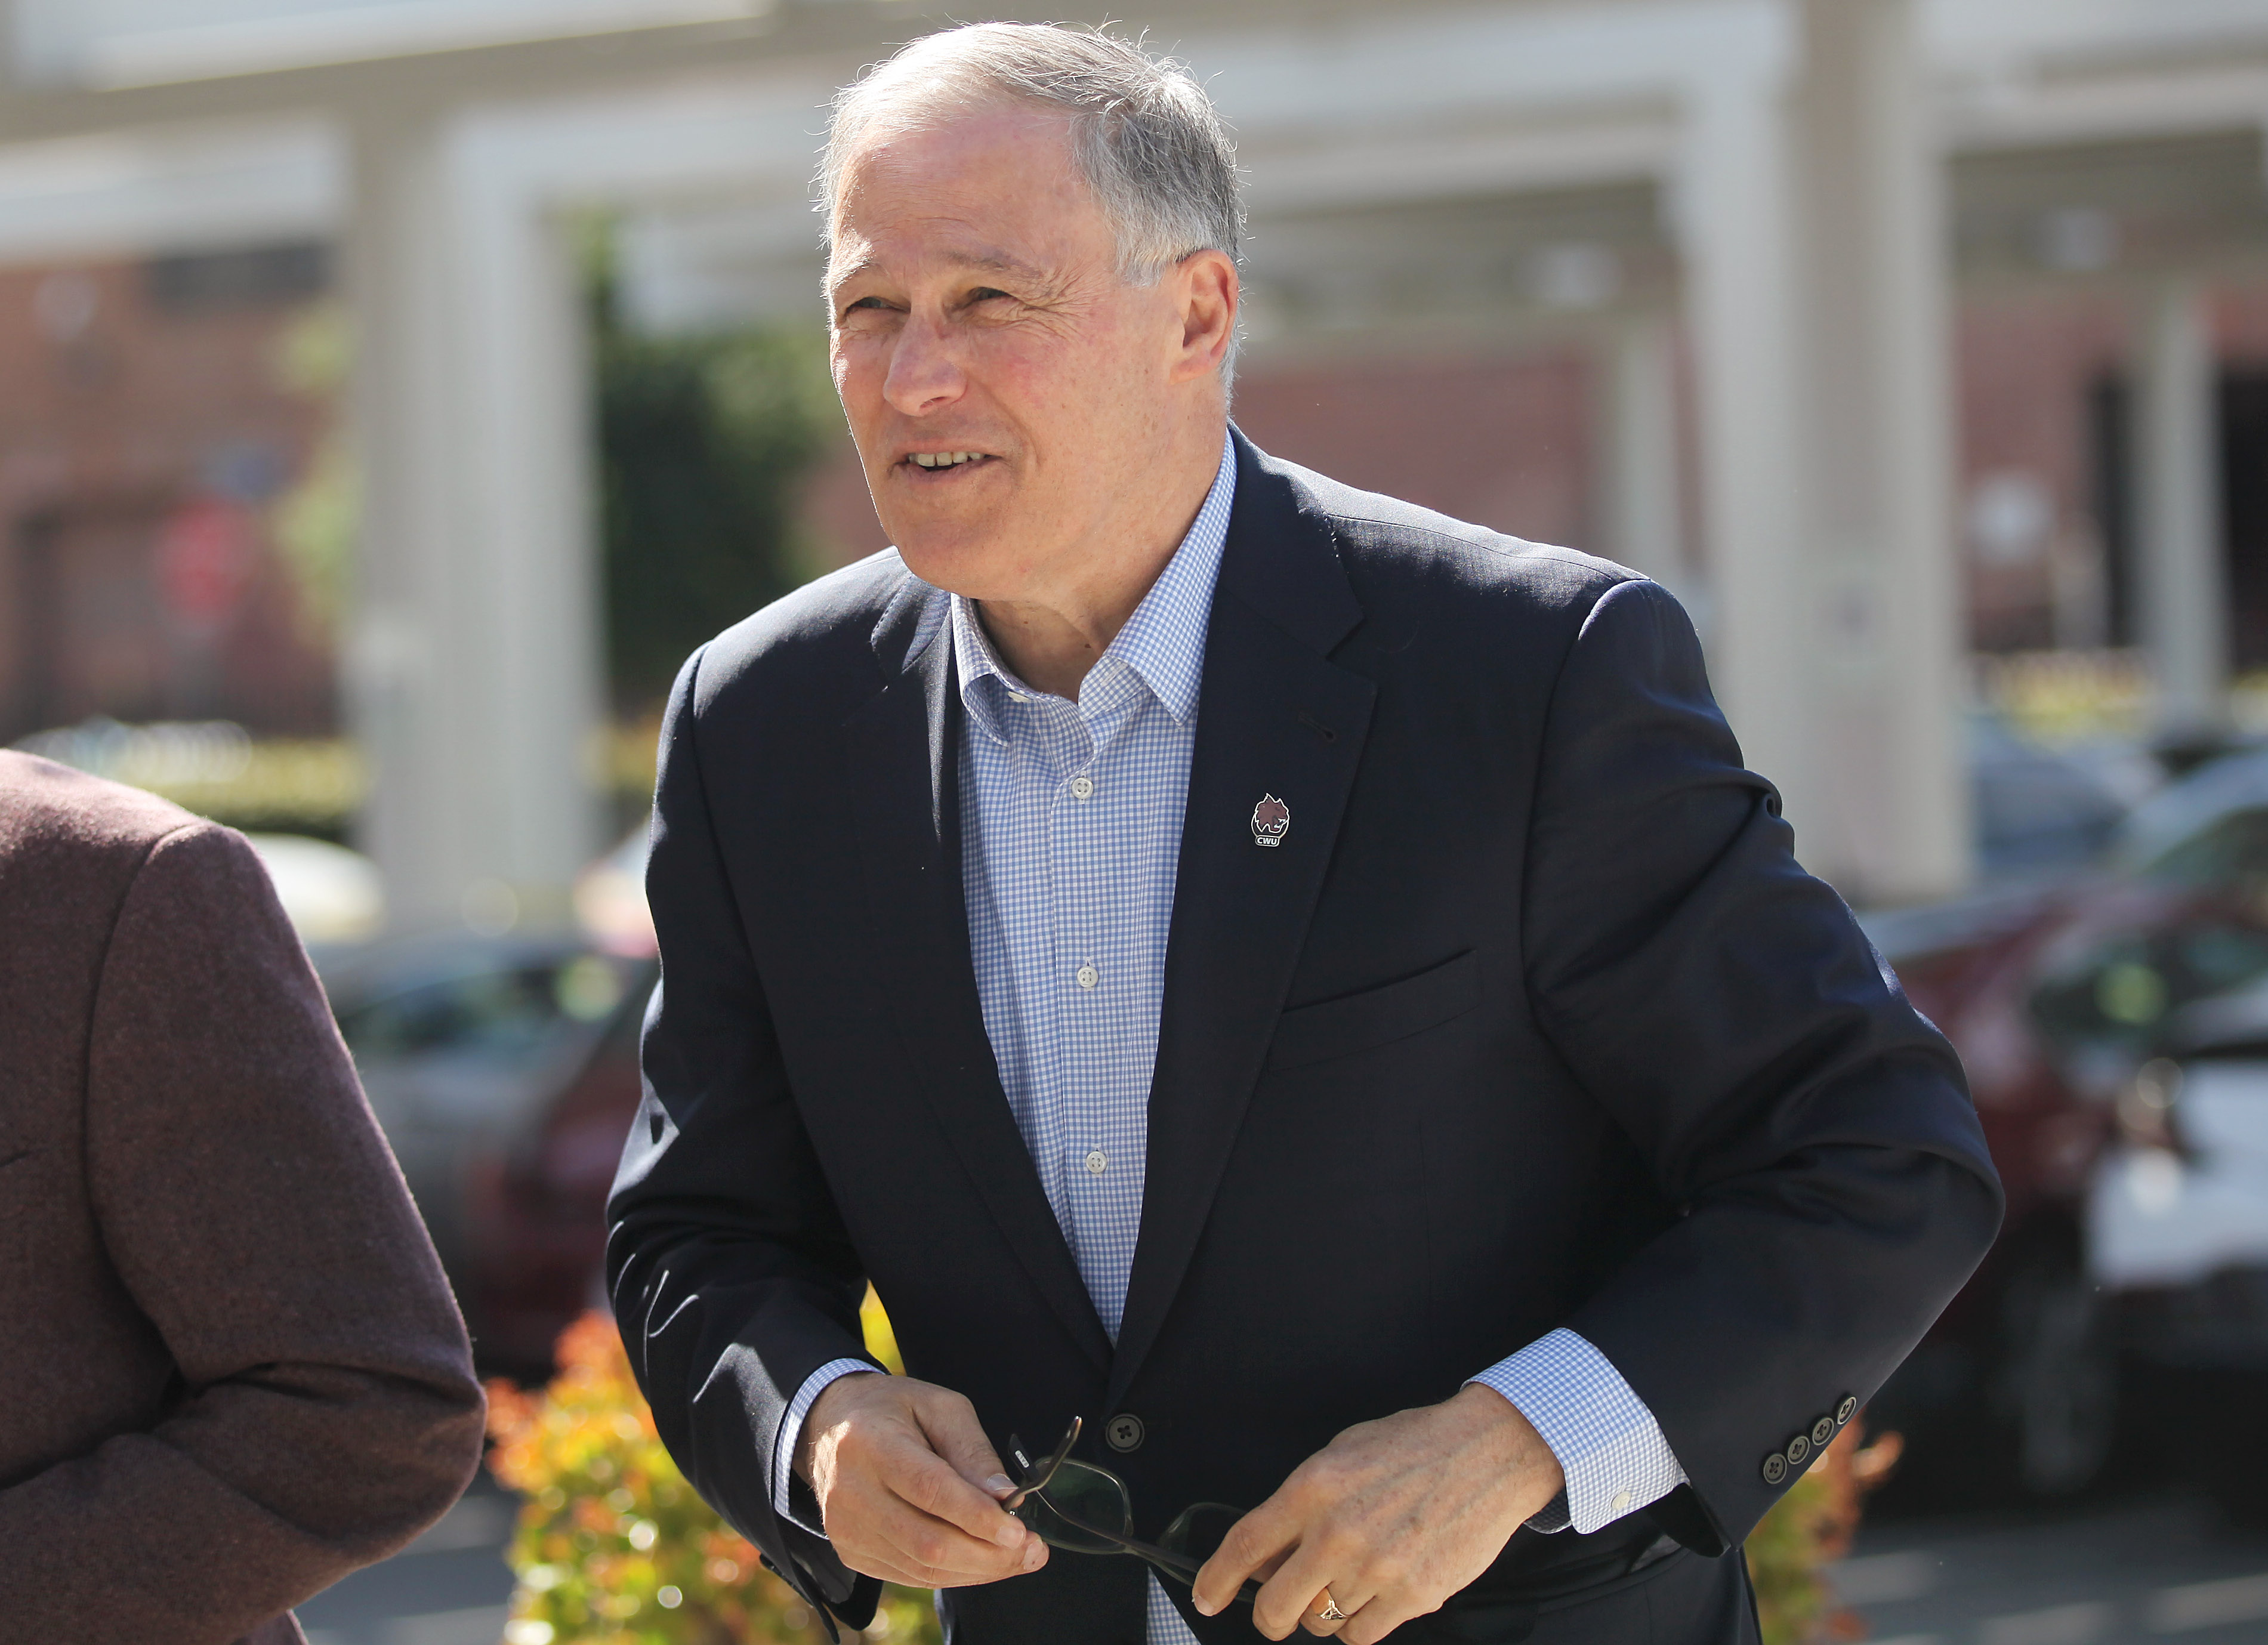 Jay Inslee is writing the climate plan the next president should adopt